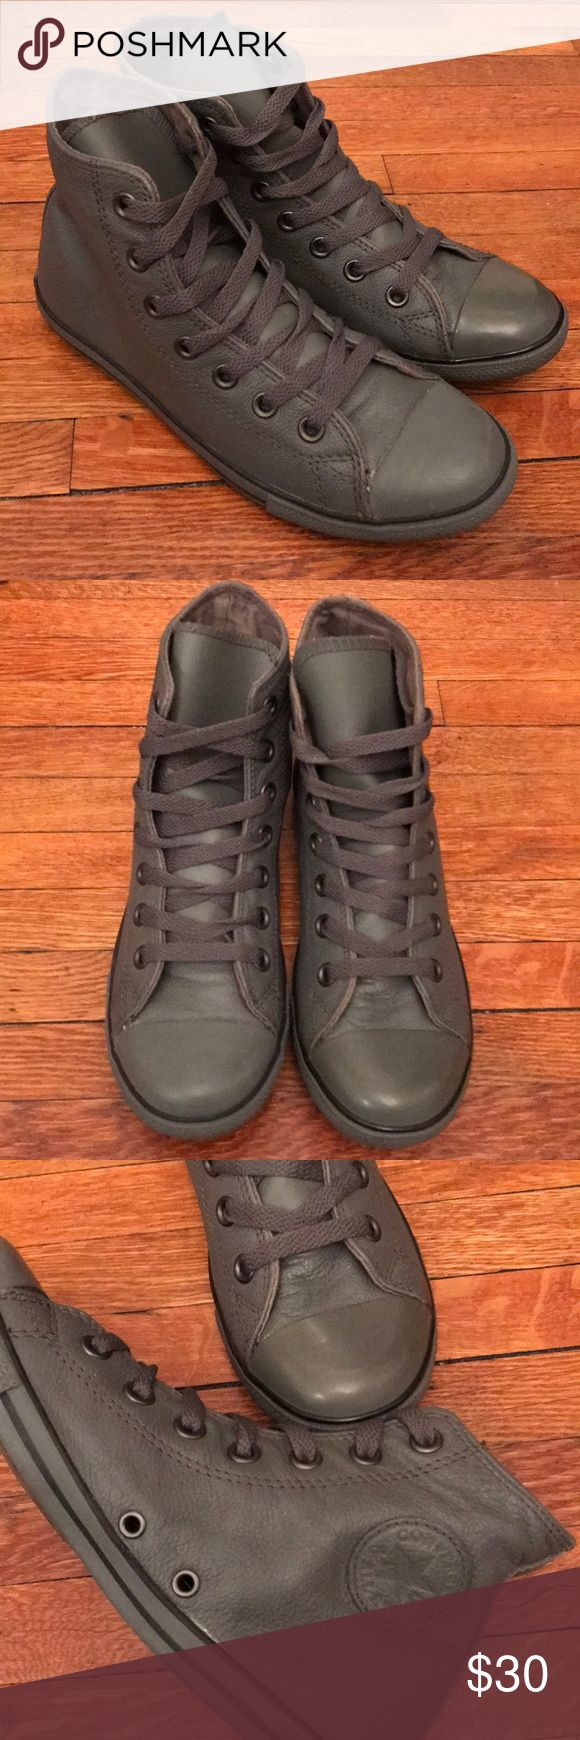 Converse Slim Hi in Charcoal size 6 new New, never worn leather Charcoal slim hi converse.  Blemishes as shown in photos. Converse Shoes Sneakers